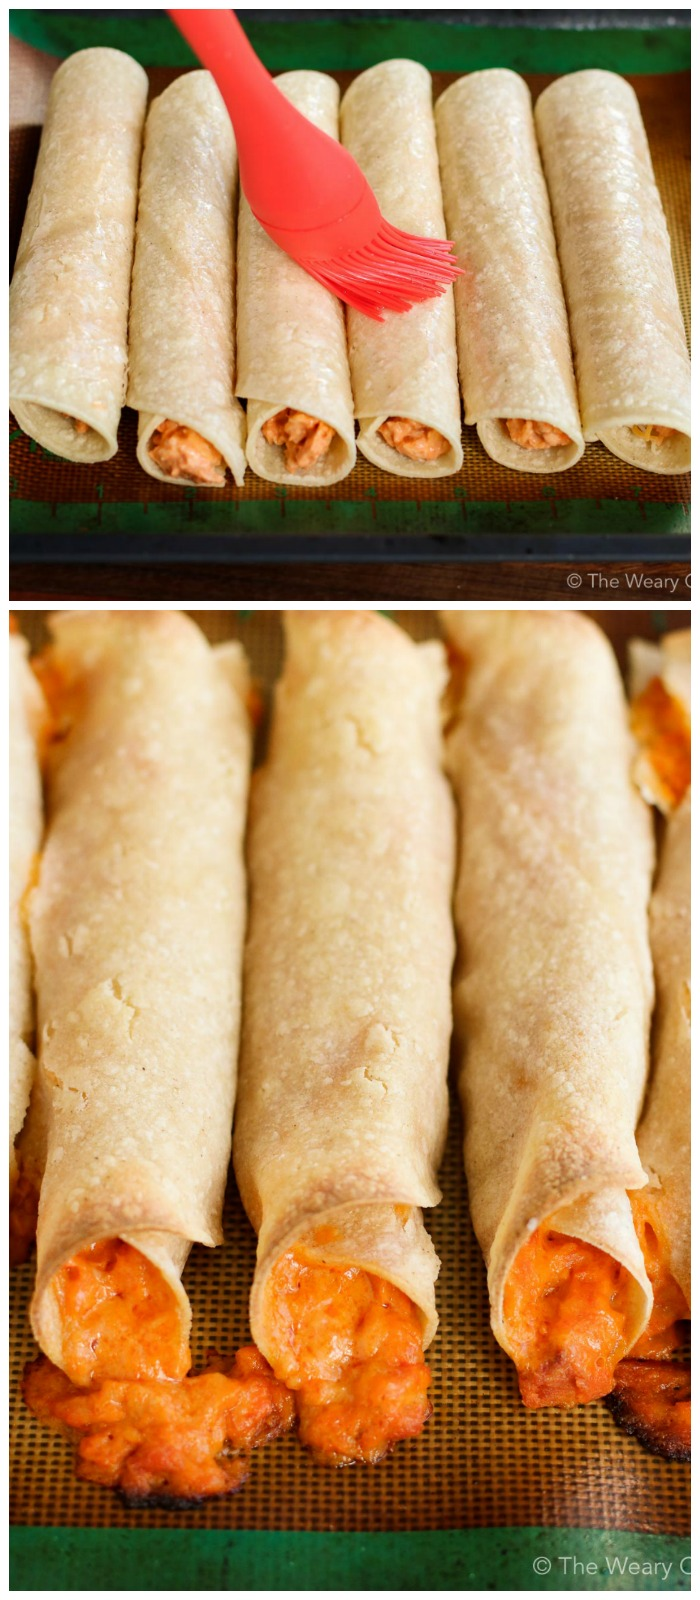 Brush your rolled taquitos with oil, and bake. Easy peasy!